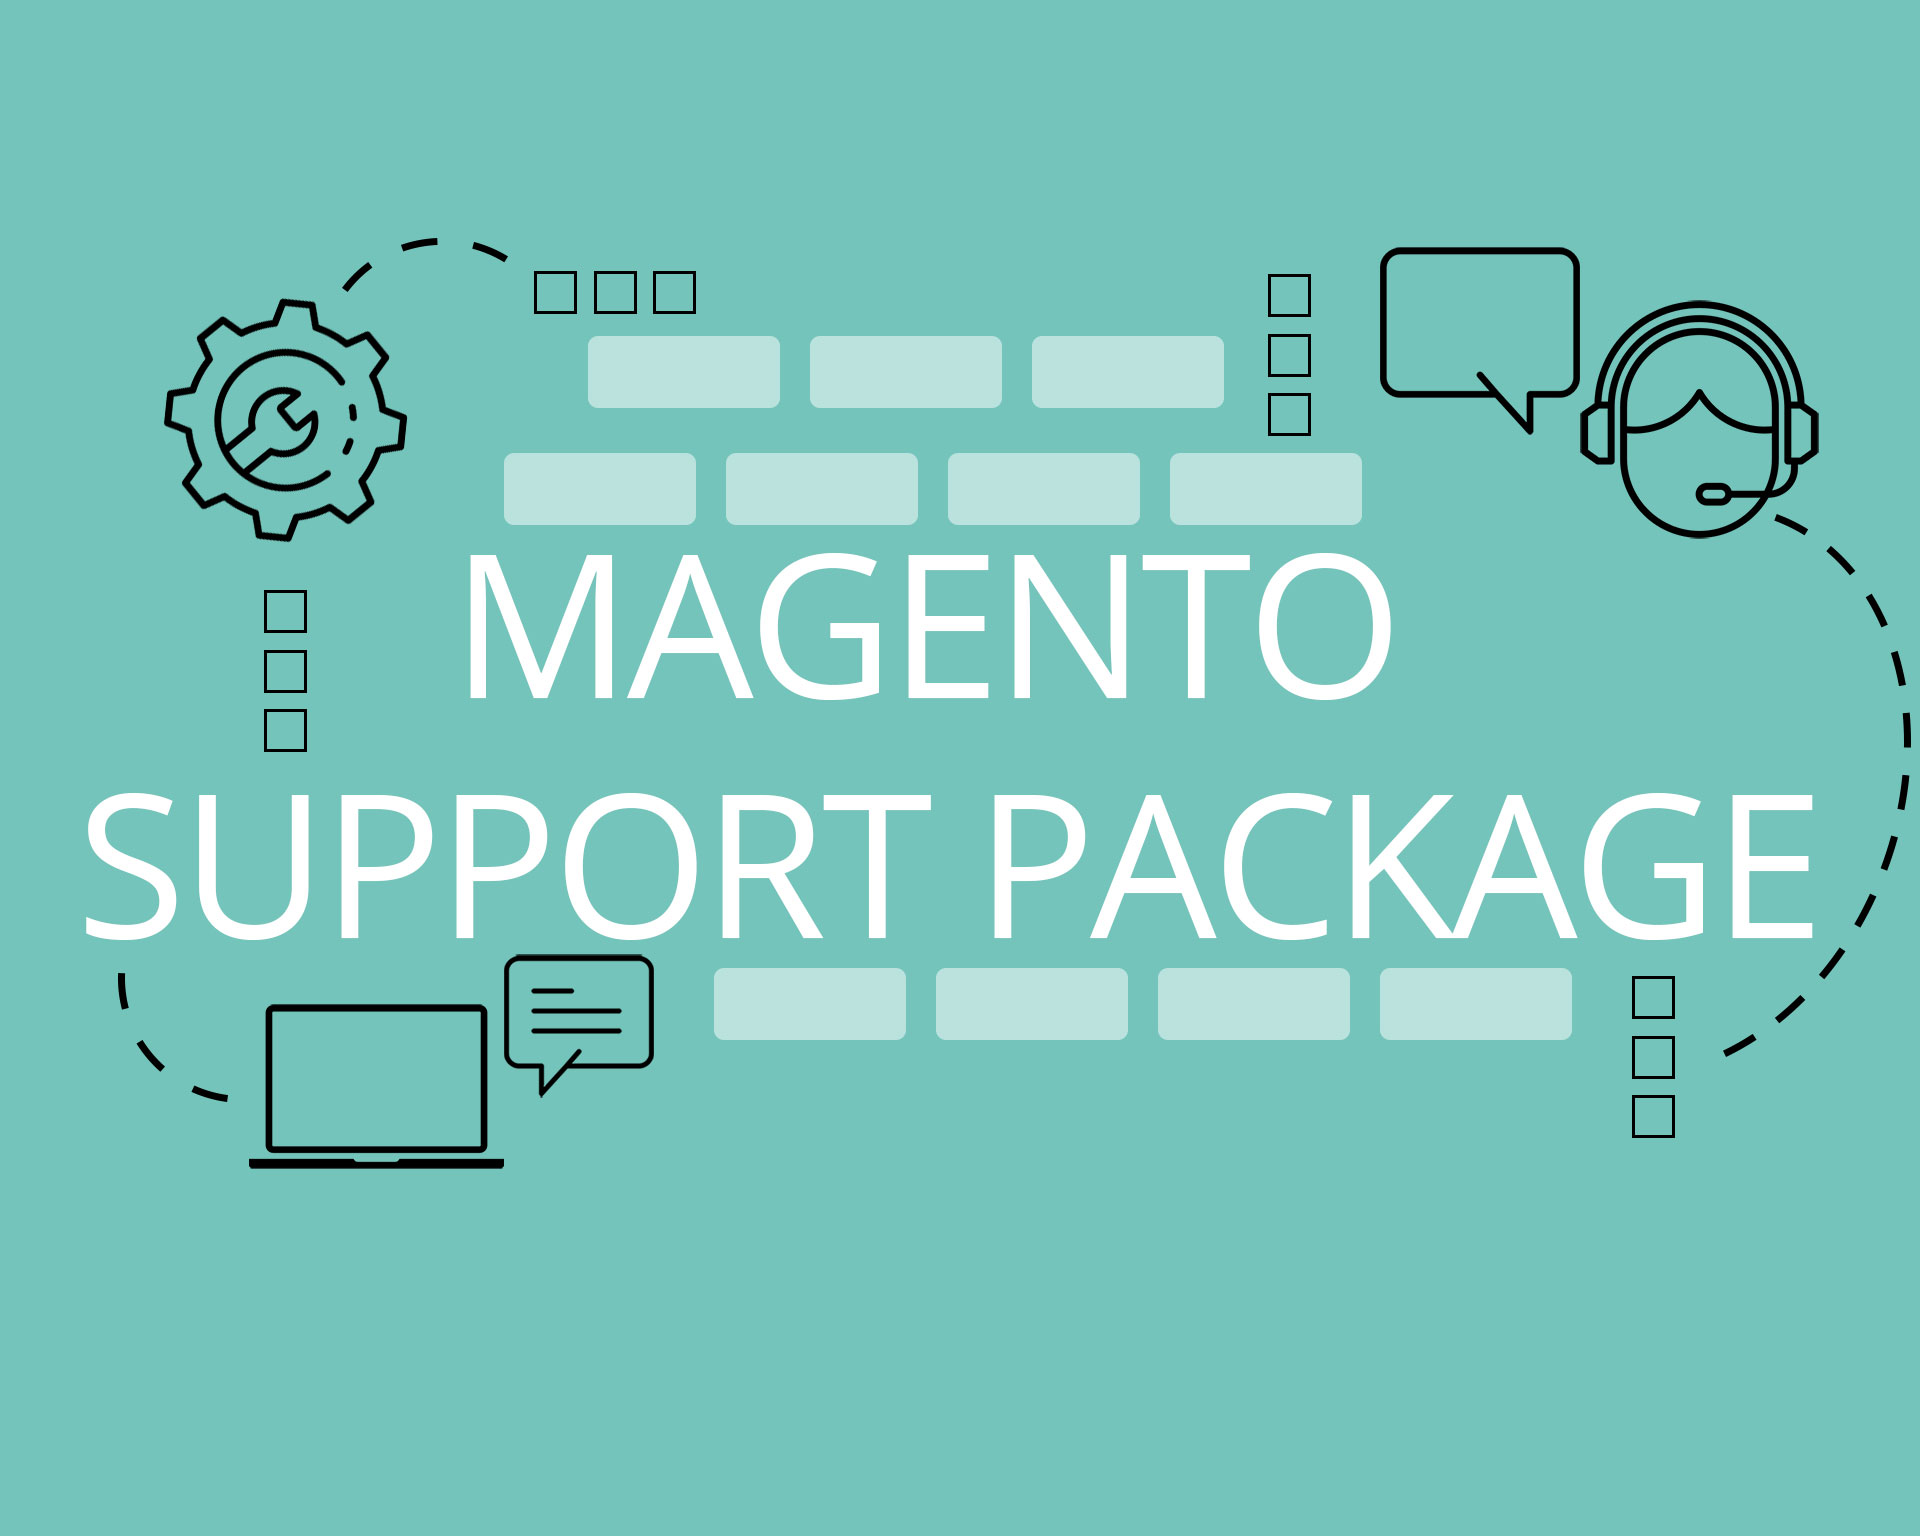 Magento Support Package